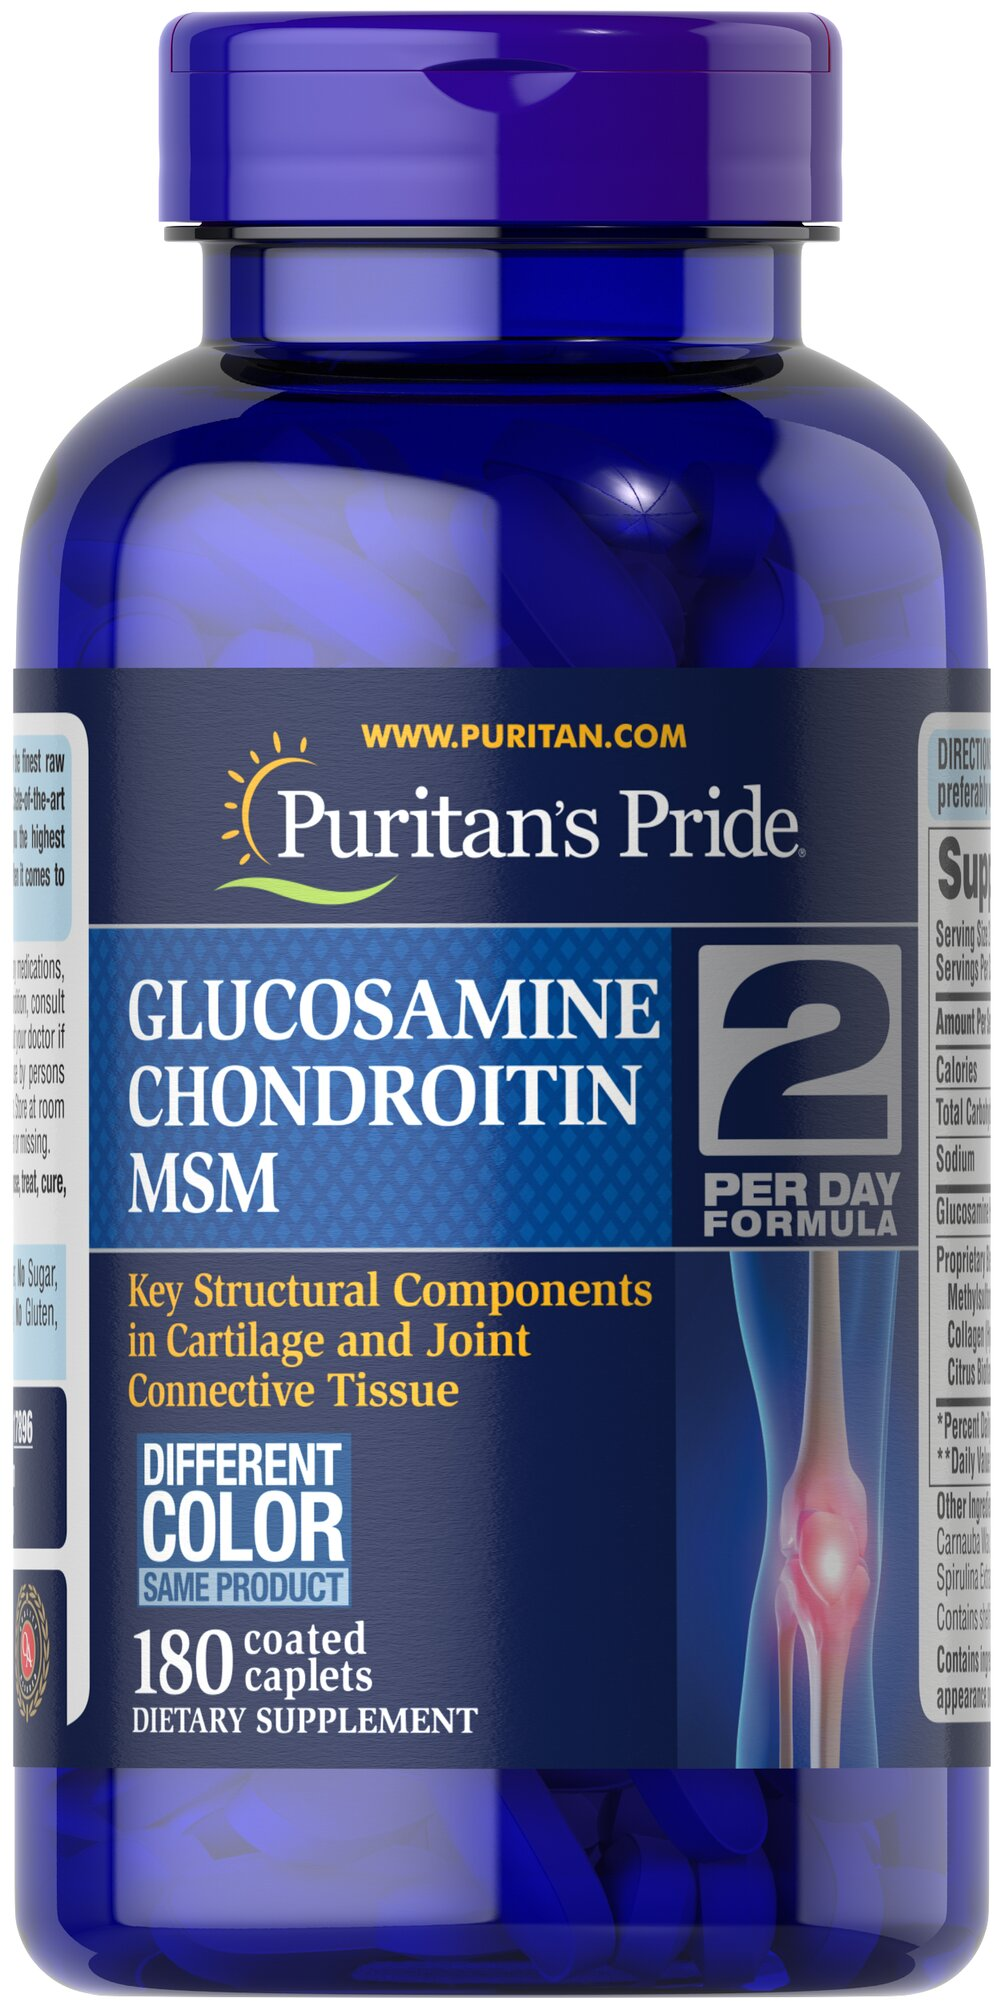 Triple Strength Glucosamine, Chondroitin & MSM Joint Soother® <p>Lubricates joints to improve flexibility**</p><p>Supports connective tissue in and around the joints**</p><p>Rejuvenates cartilage to encourage joint comfort**</p><p>Triple Strength Glucosamine, Chondroitin and MSM is the most powerful joint soother yet!** Just two caplets per day will give you triple strength protection with 1500 mg of Glucosamine, and 1700 mg of our joint nourish